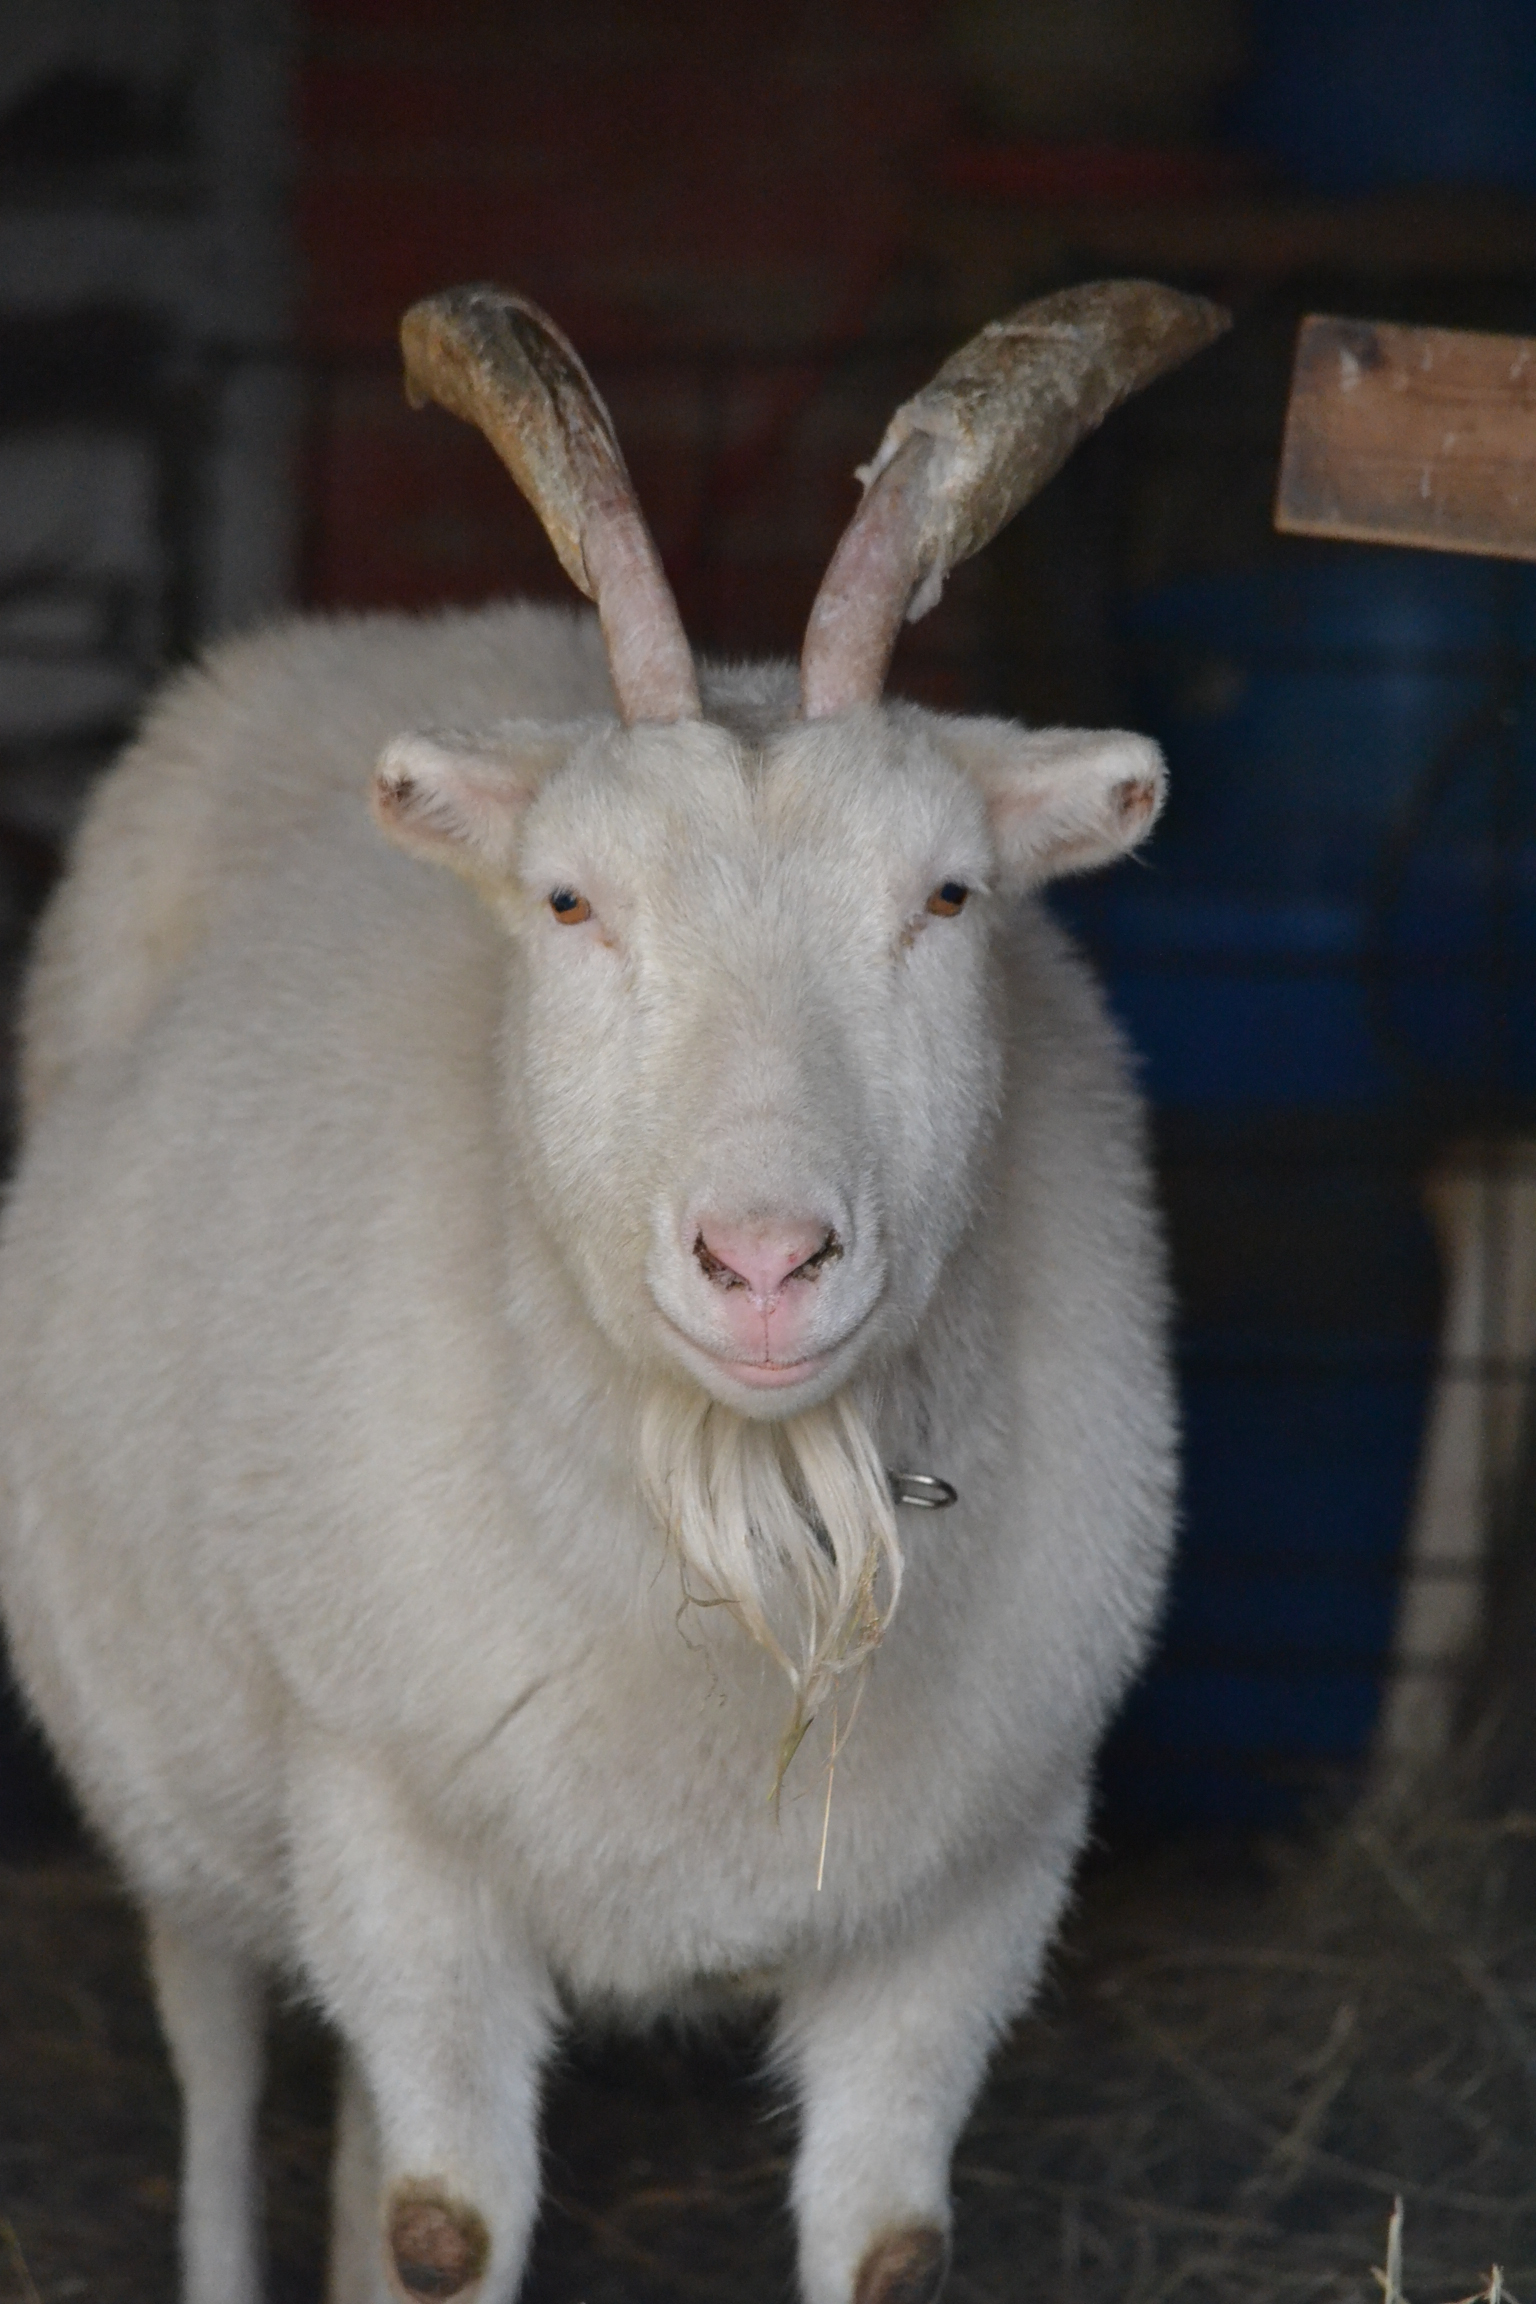 In some instances, goats may be a bit anemic, and it is not uncommon